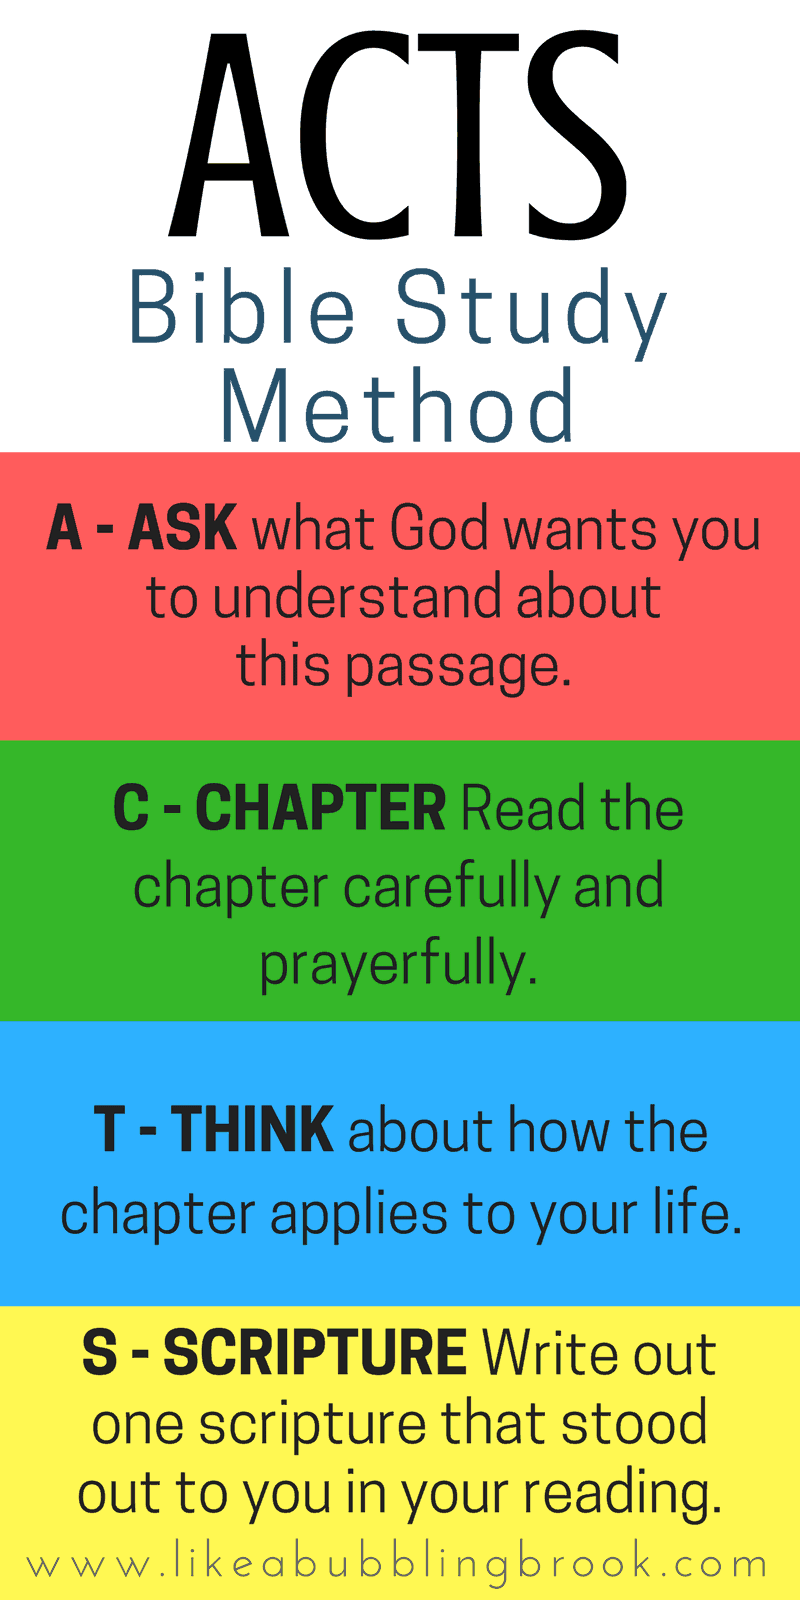 The ACTS Bible Study Method. This is so easy to remember!